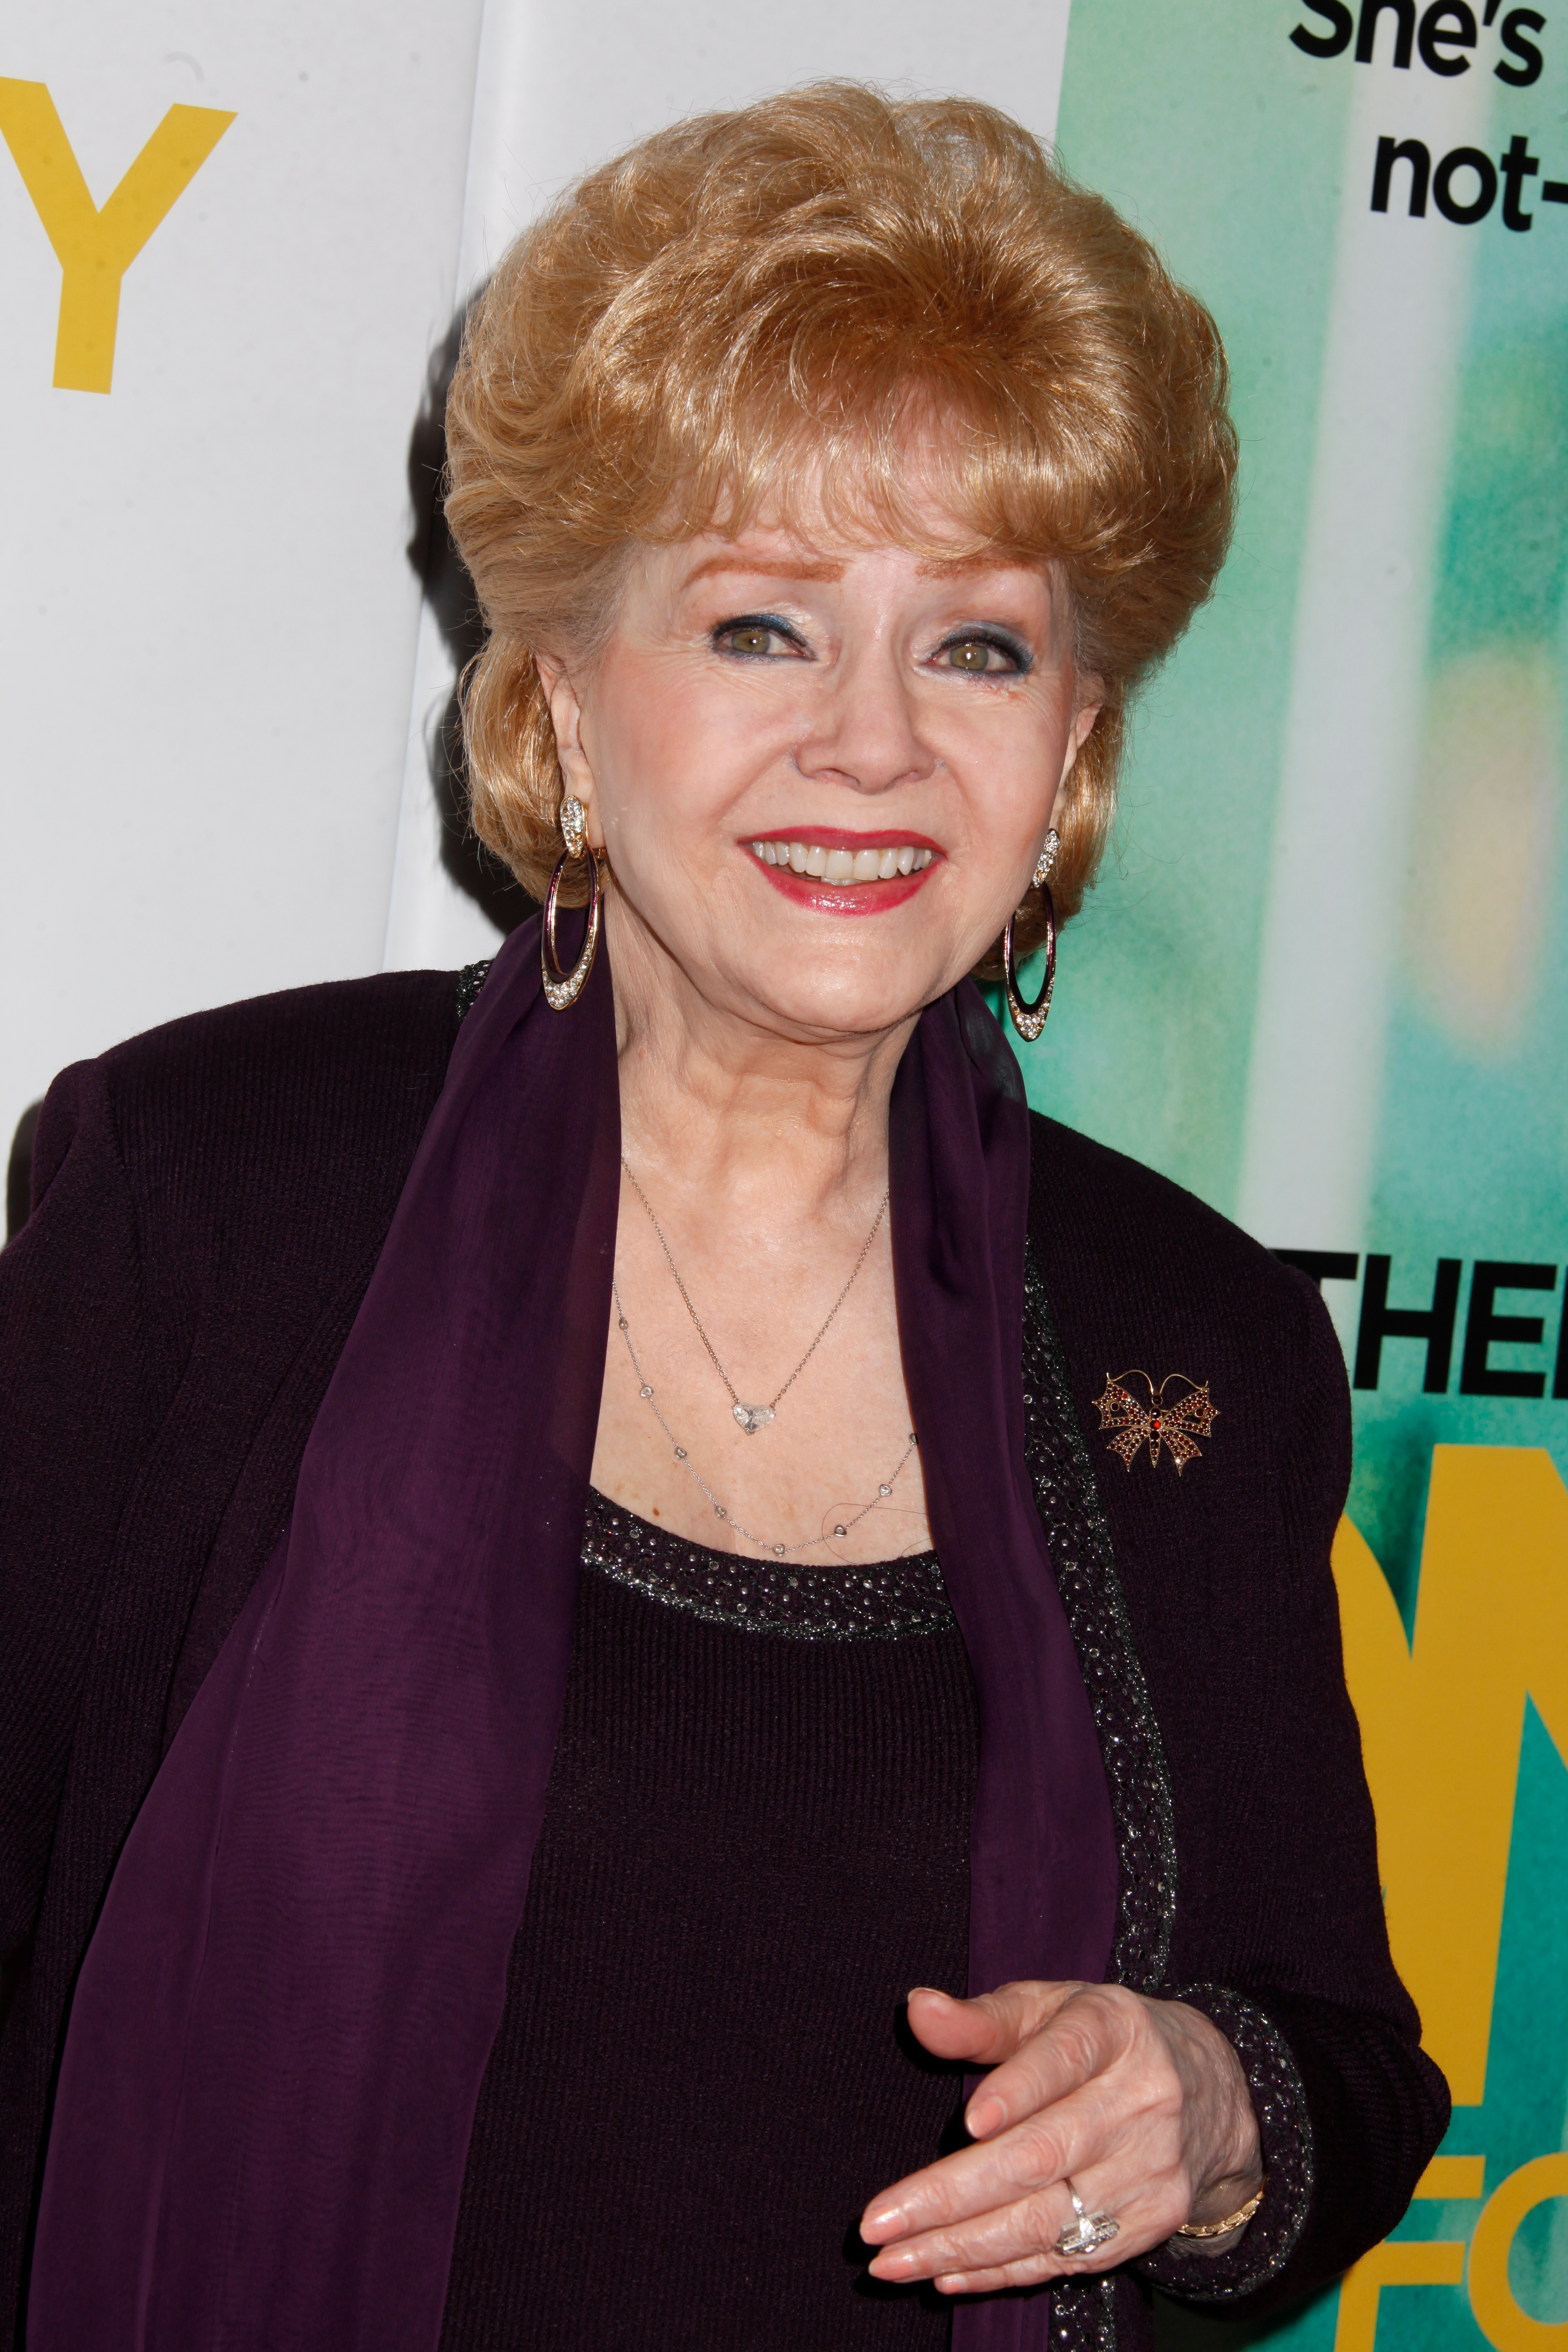 Mandatory Credit: Photo by Gregory Pace/BEI/BEI/Shutterstock (1545236q) Debbie Reynolds 'One For the Money' film screening, New York, America - 24 Jan 2012